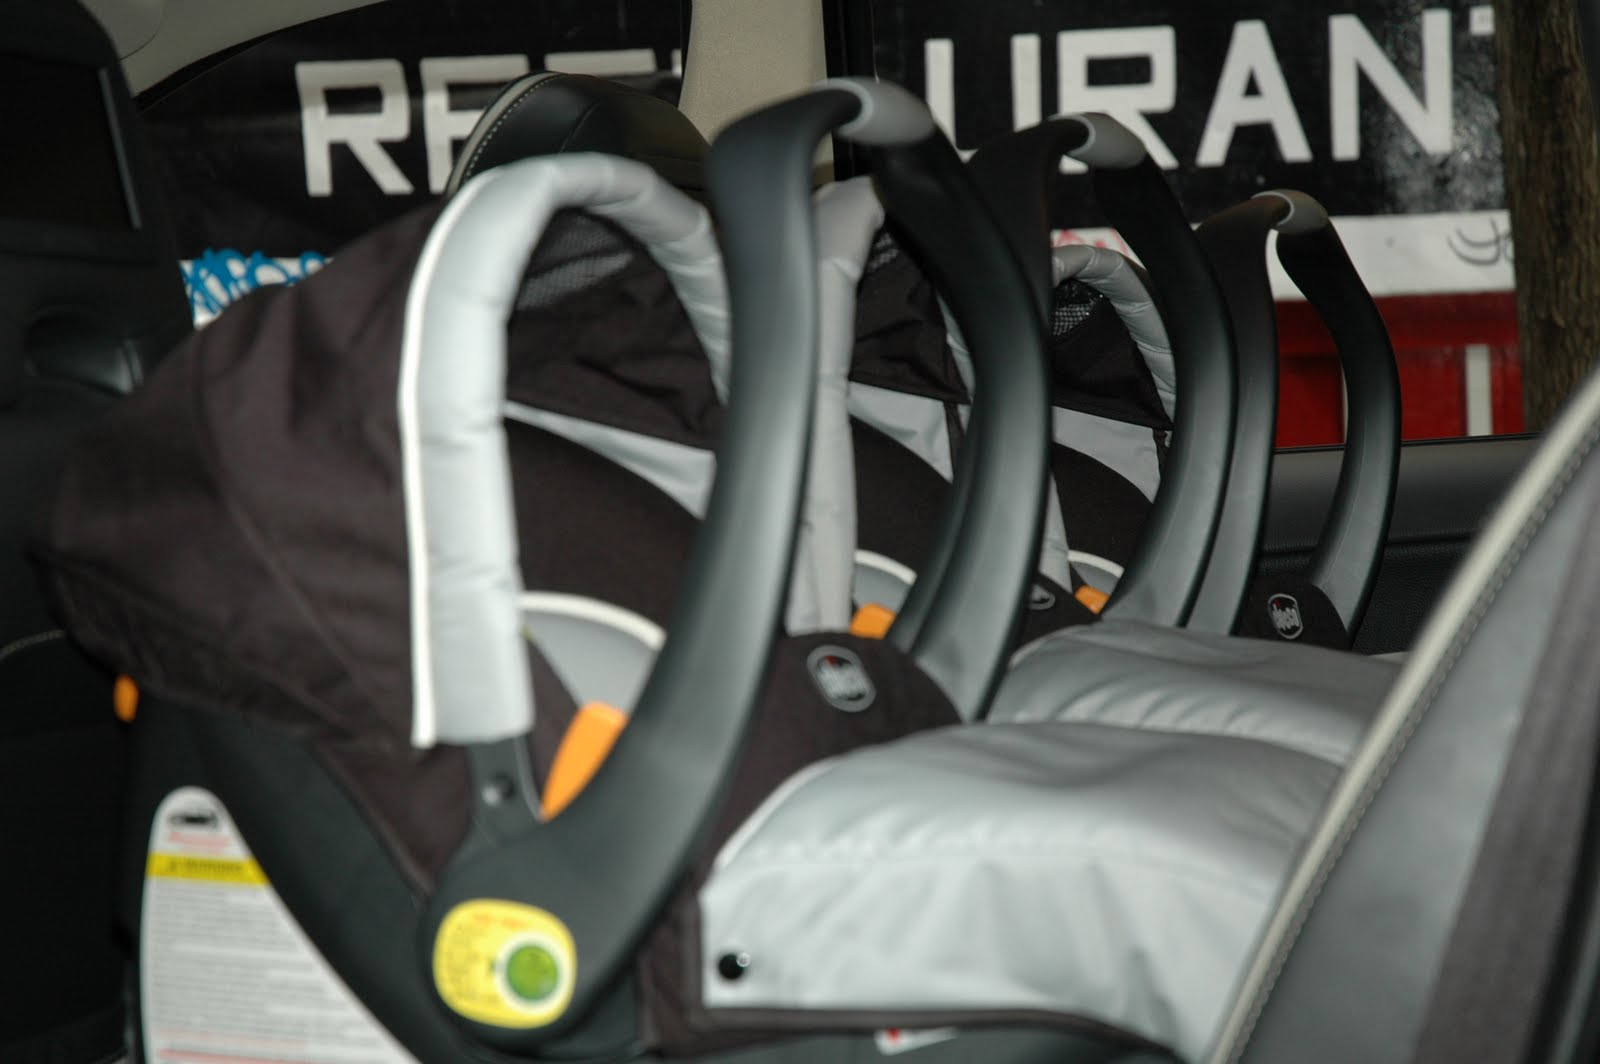 TRIPLETS Tips On Fitting 3 Infant Seats Across The Back Seat Or 2 Side By For Twins